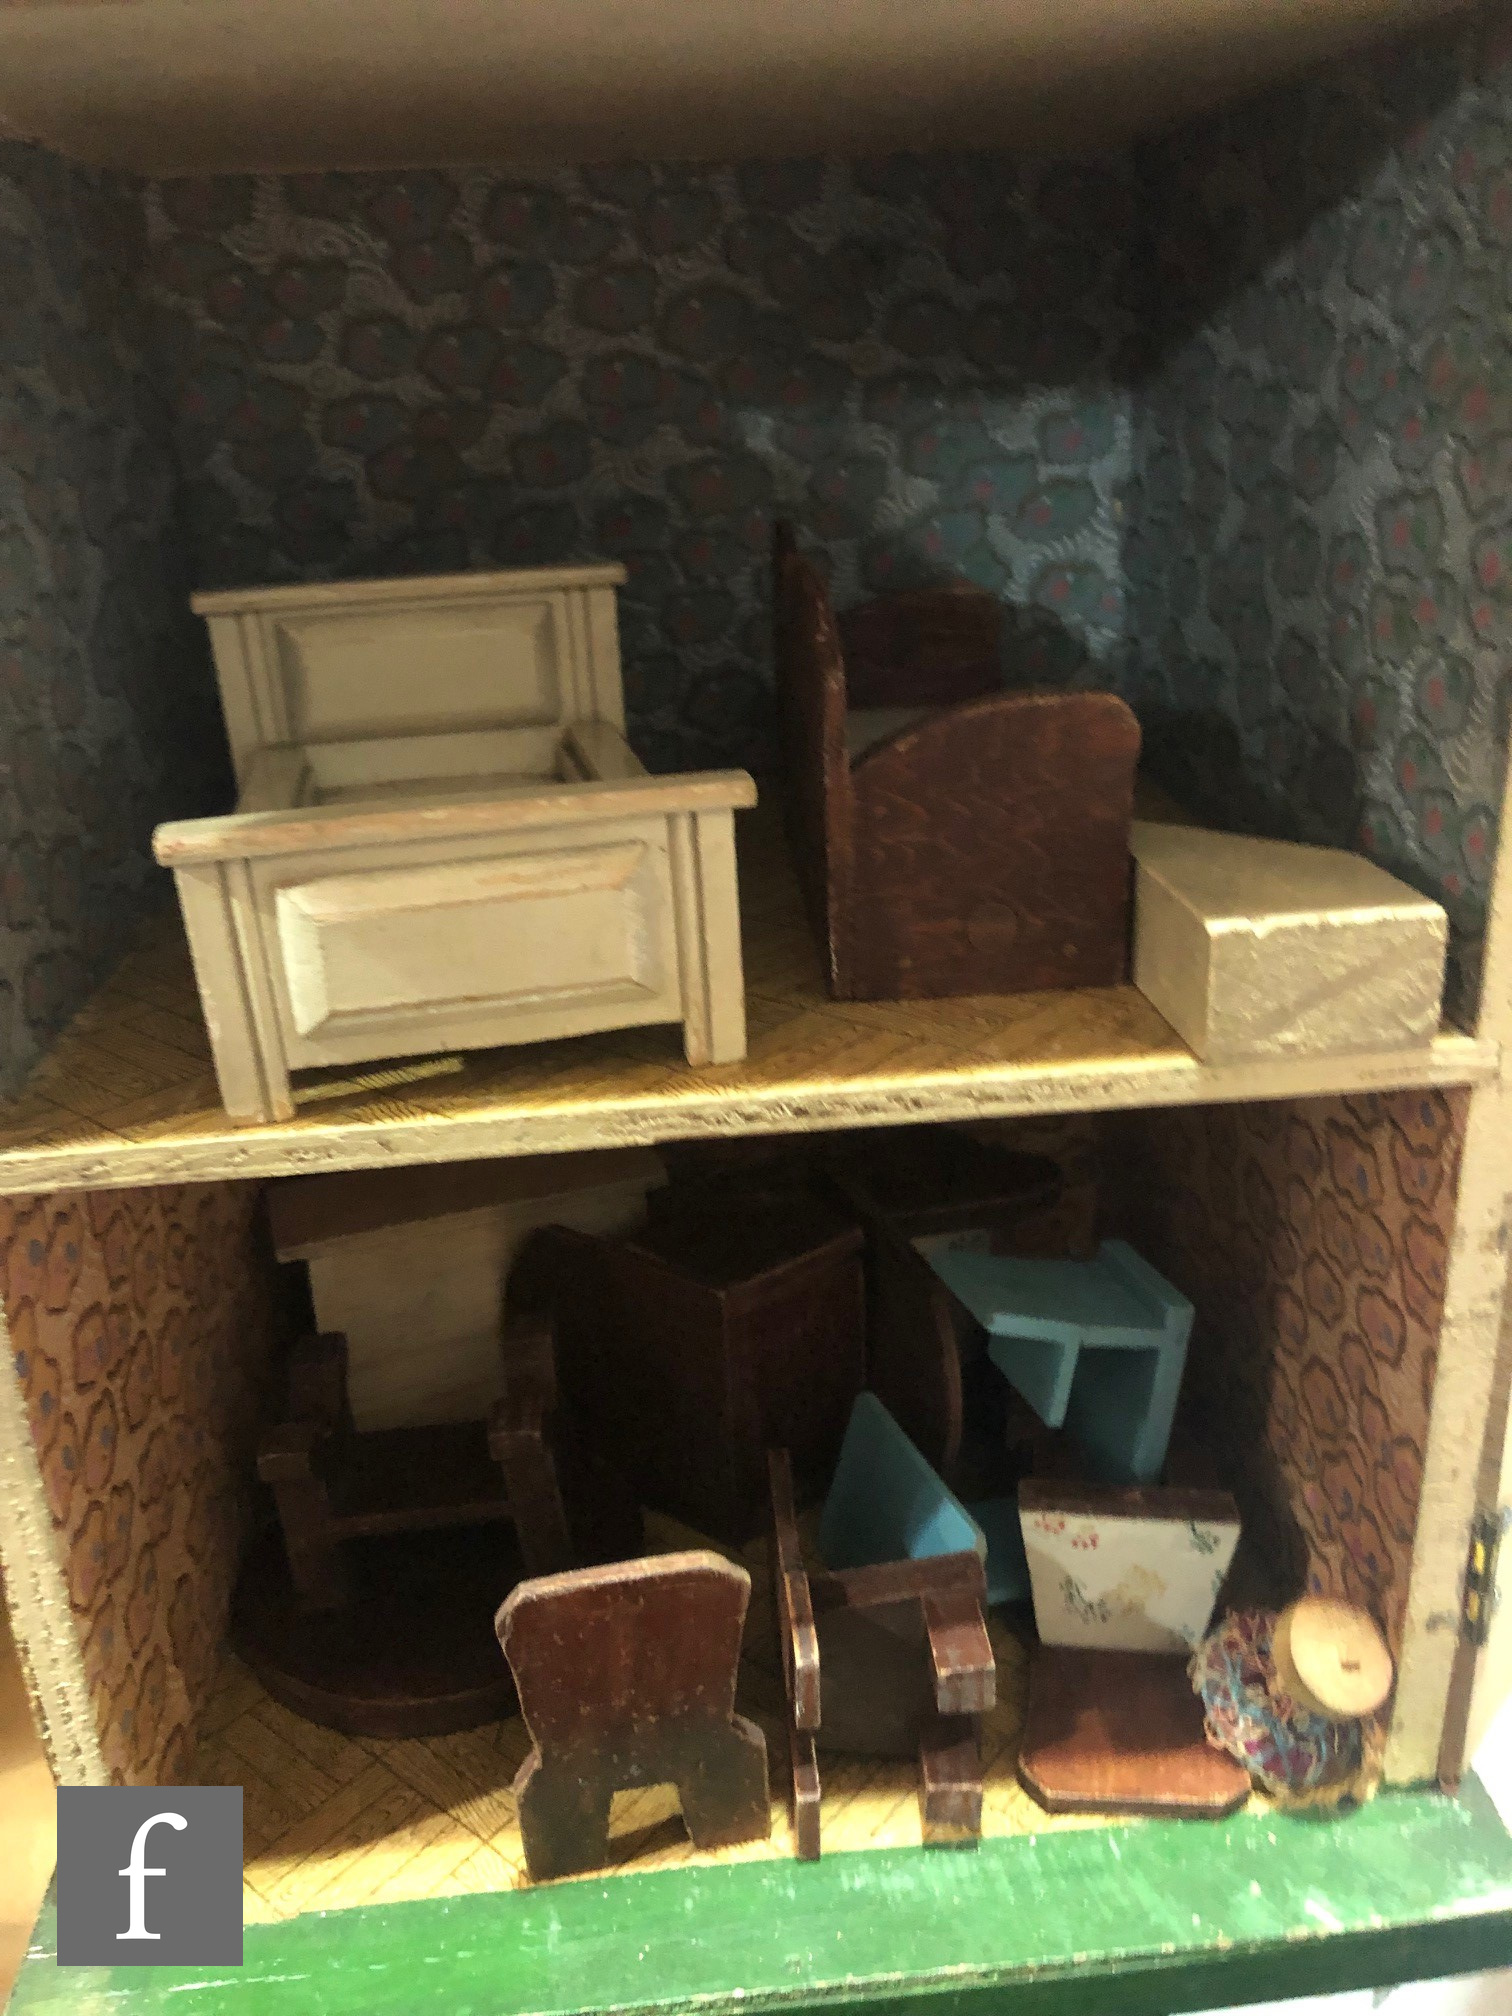 A Triang The Pixie Dolls House, two storey with two rooms and hinged opening, in original box, - Image 4 of 13